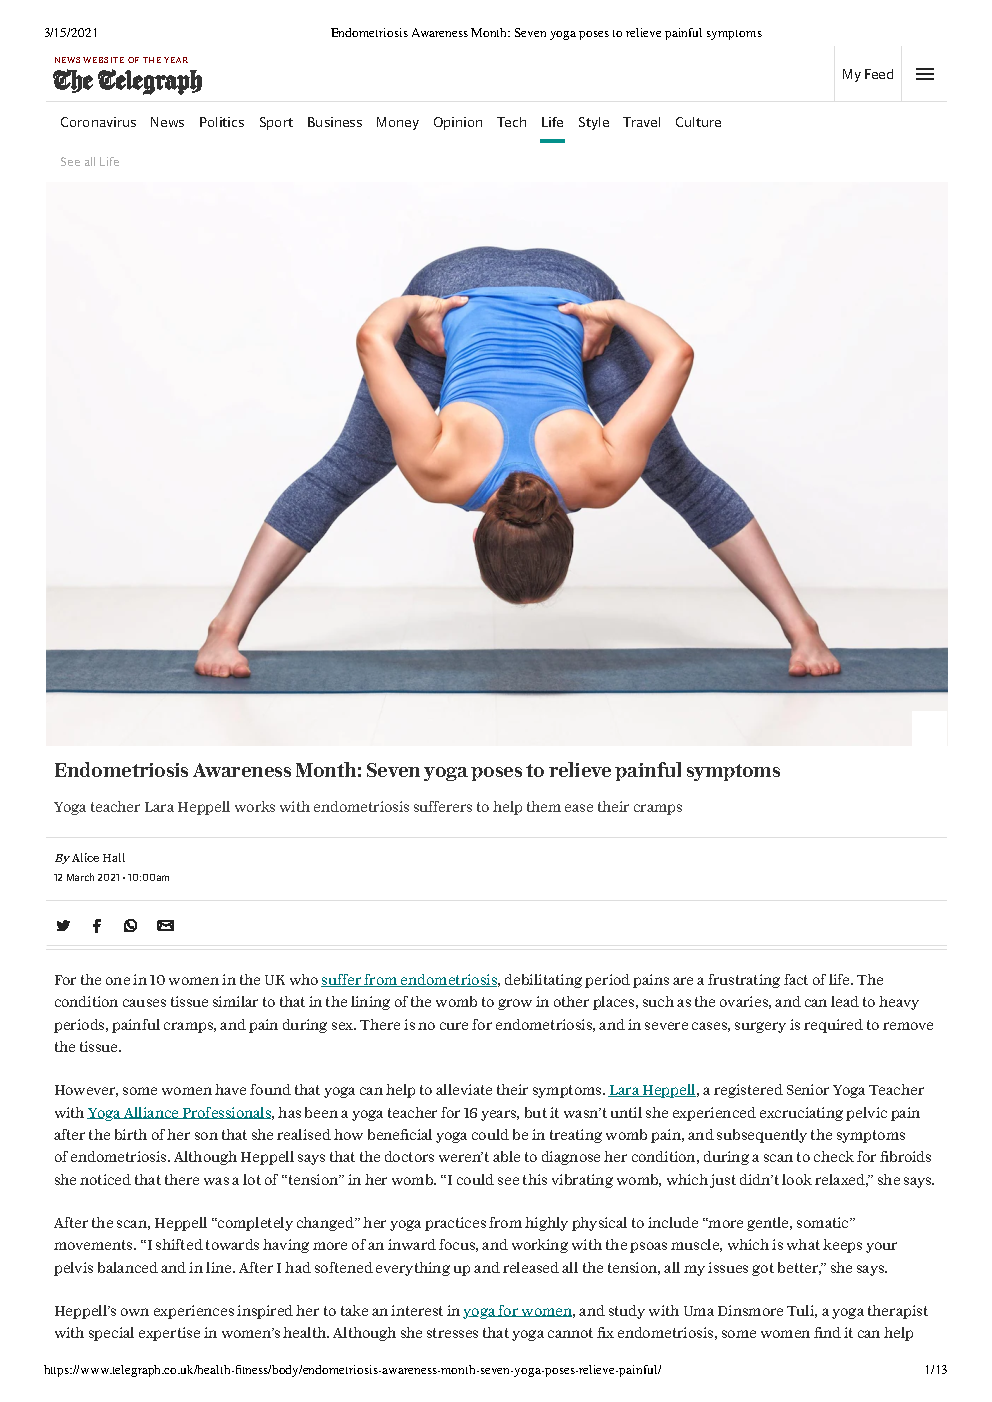 allwoman The Telegraph article - Endometrosis Awareness Month - Seven yoga poses to relieve painful symptoms